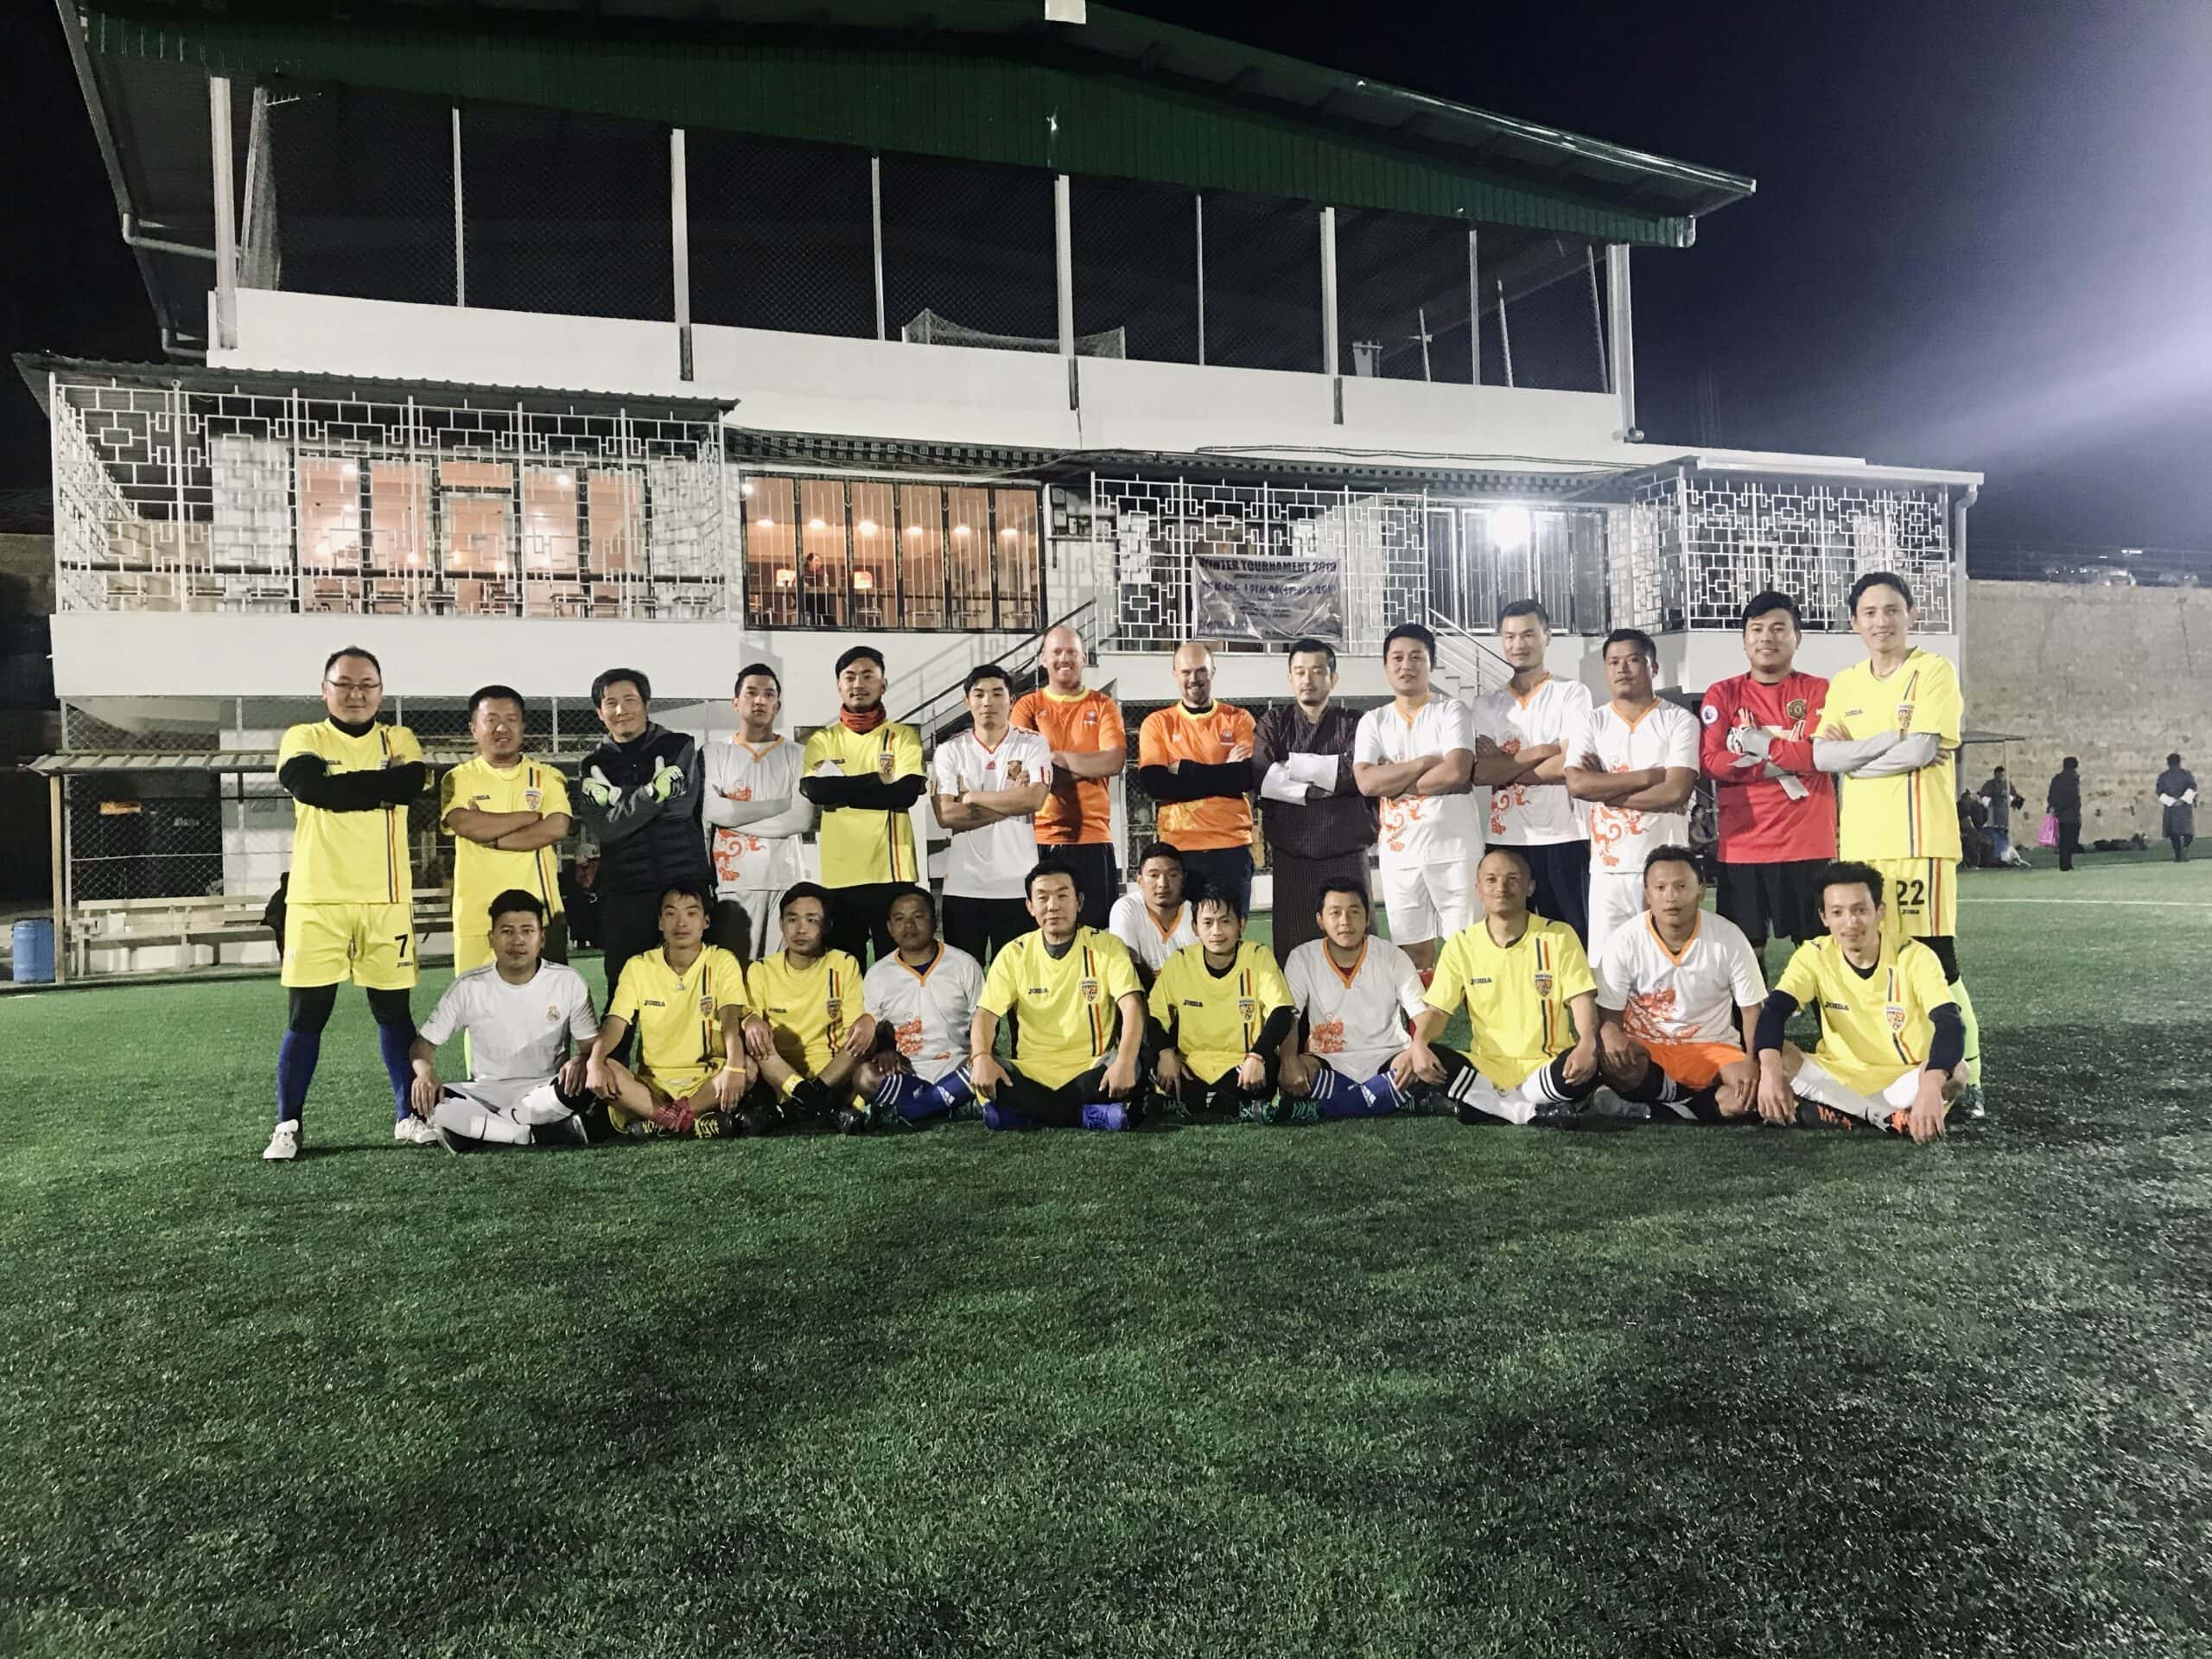 Two teams after a football game in Bhutan